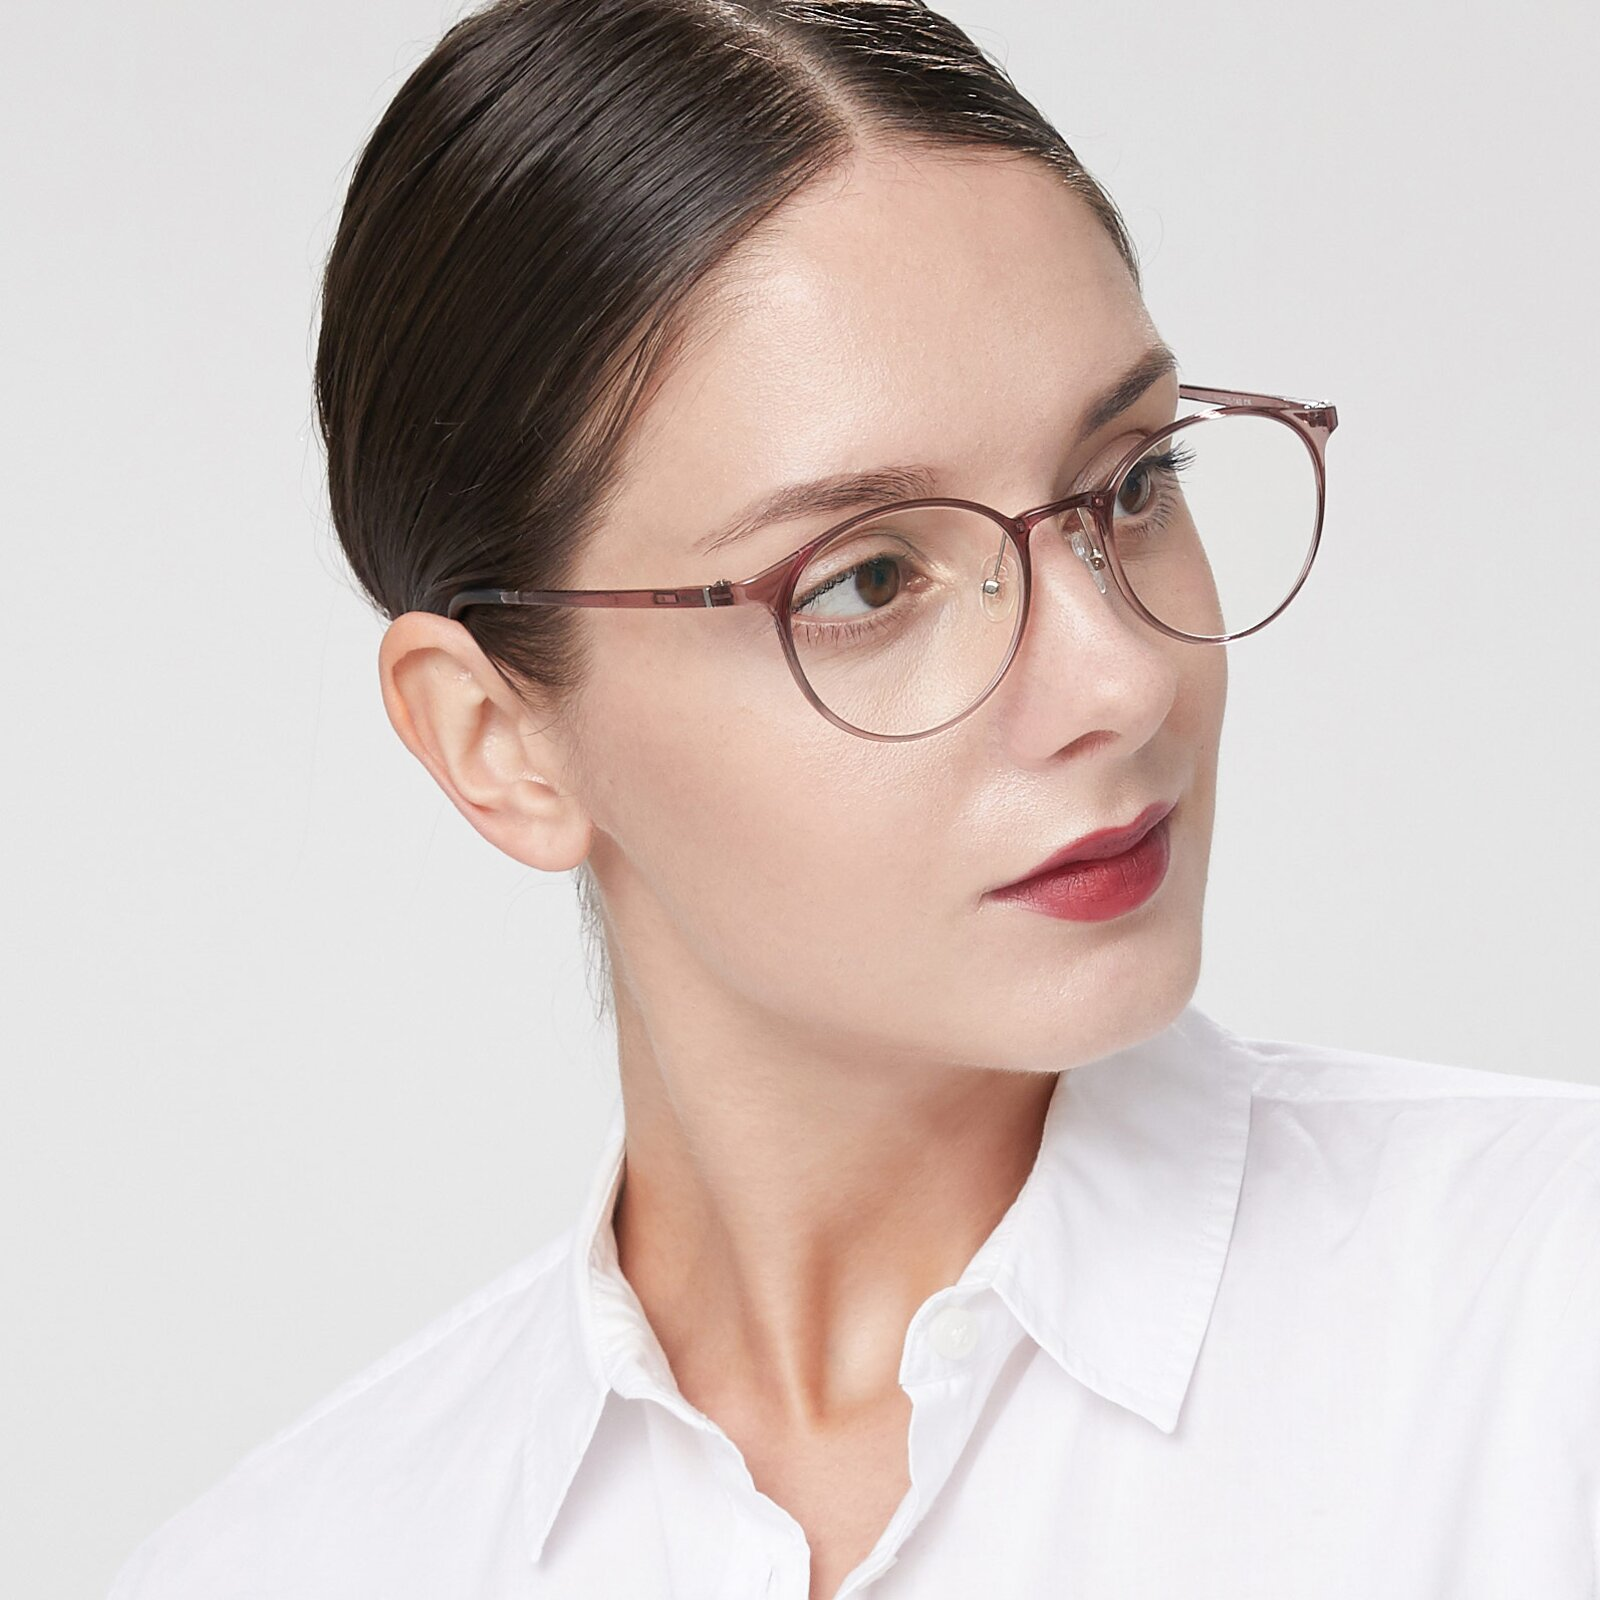 Women's lifestyle photography of S7027 in Transparent Brown with Clear Eyeglass Lenses